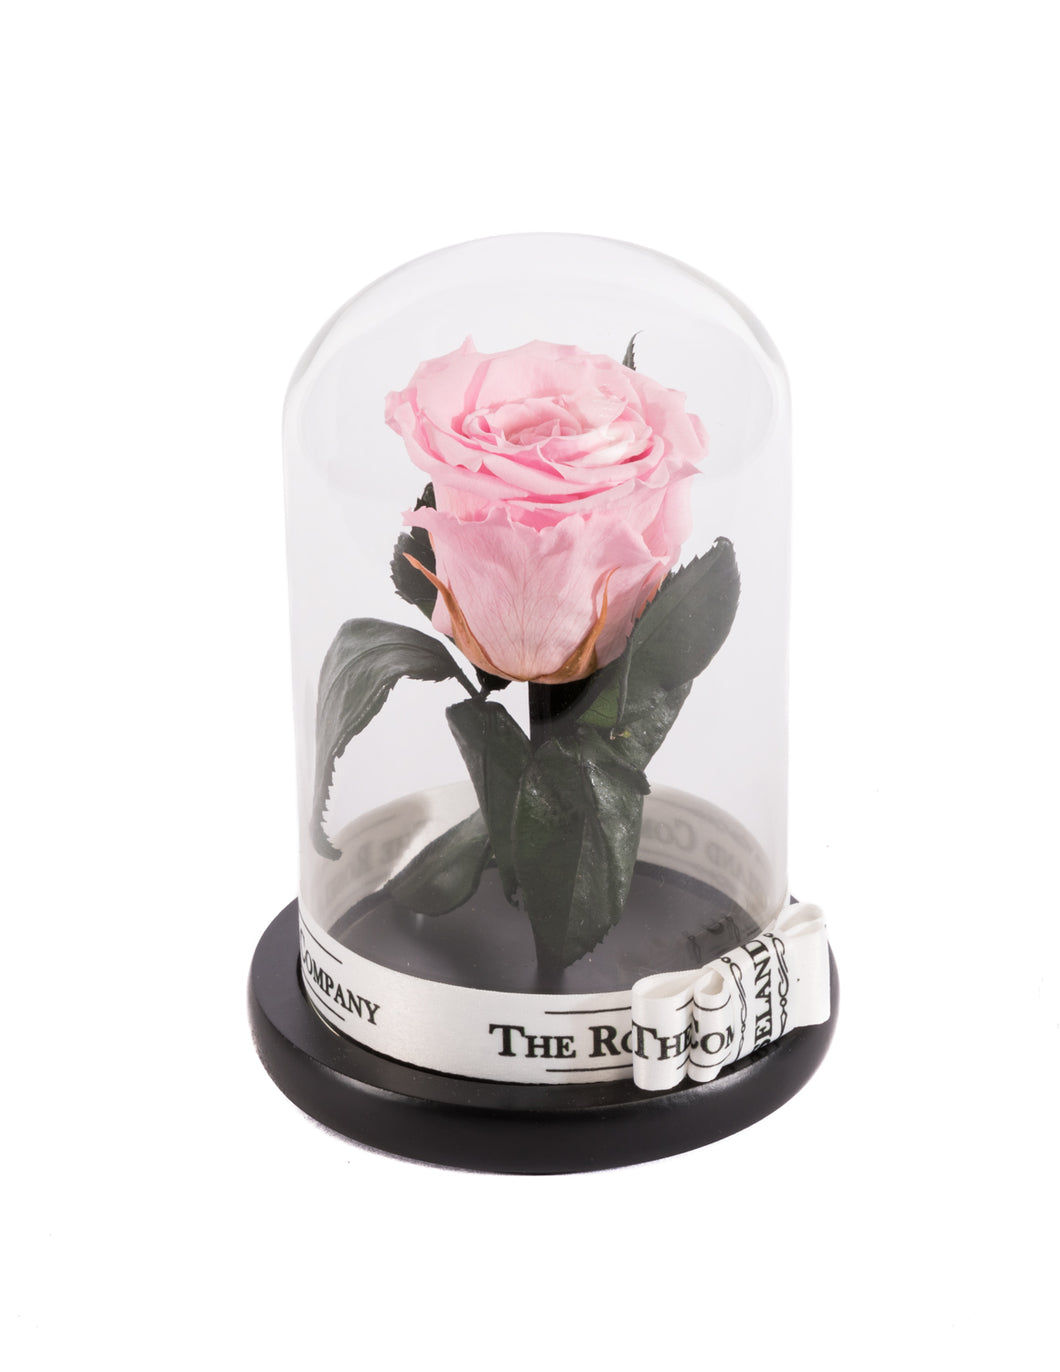 As seen in Beauty and the Beast: PINK Eternity Rose, Under the Dome